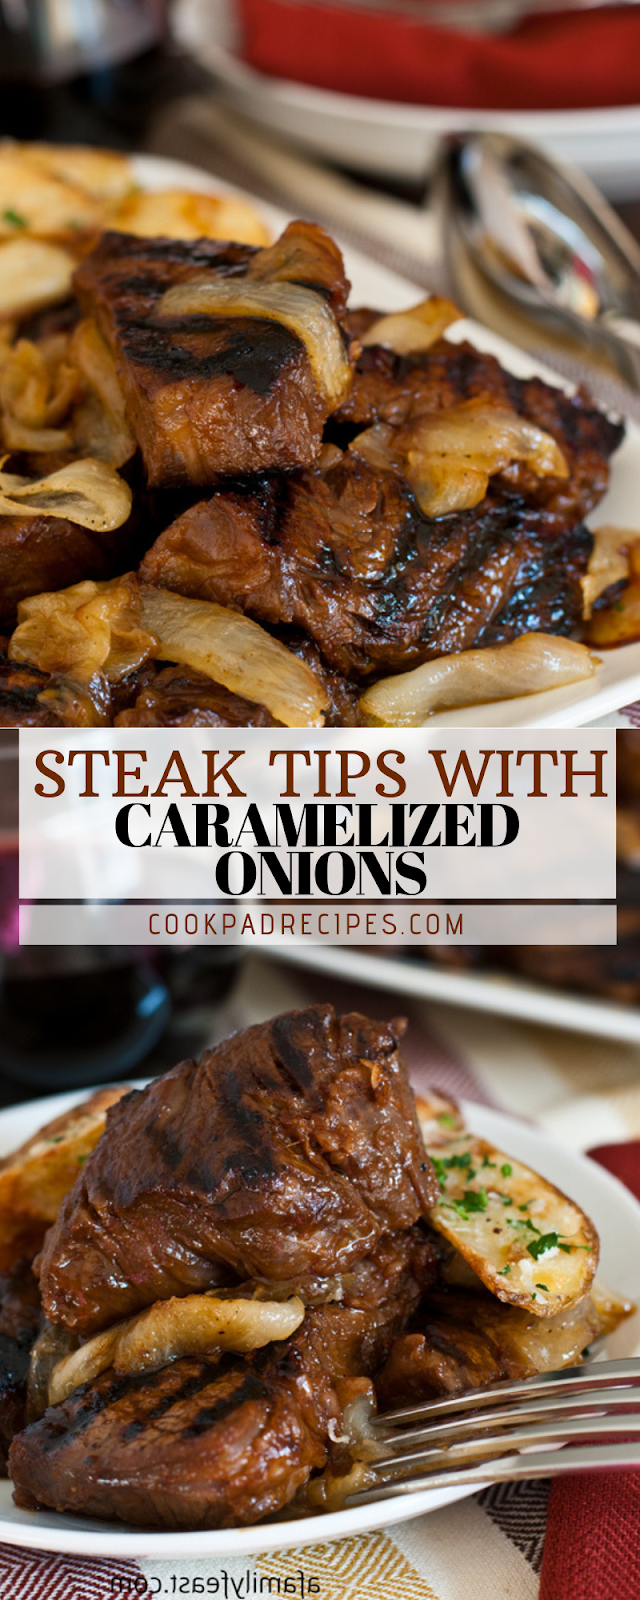 Steak Tips with Cаrаmеlіzеd Onions